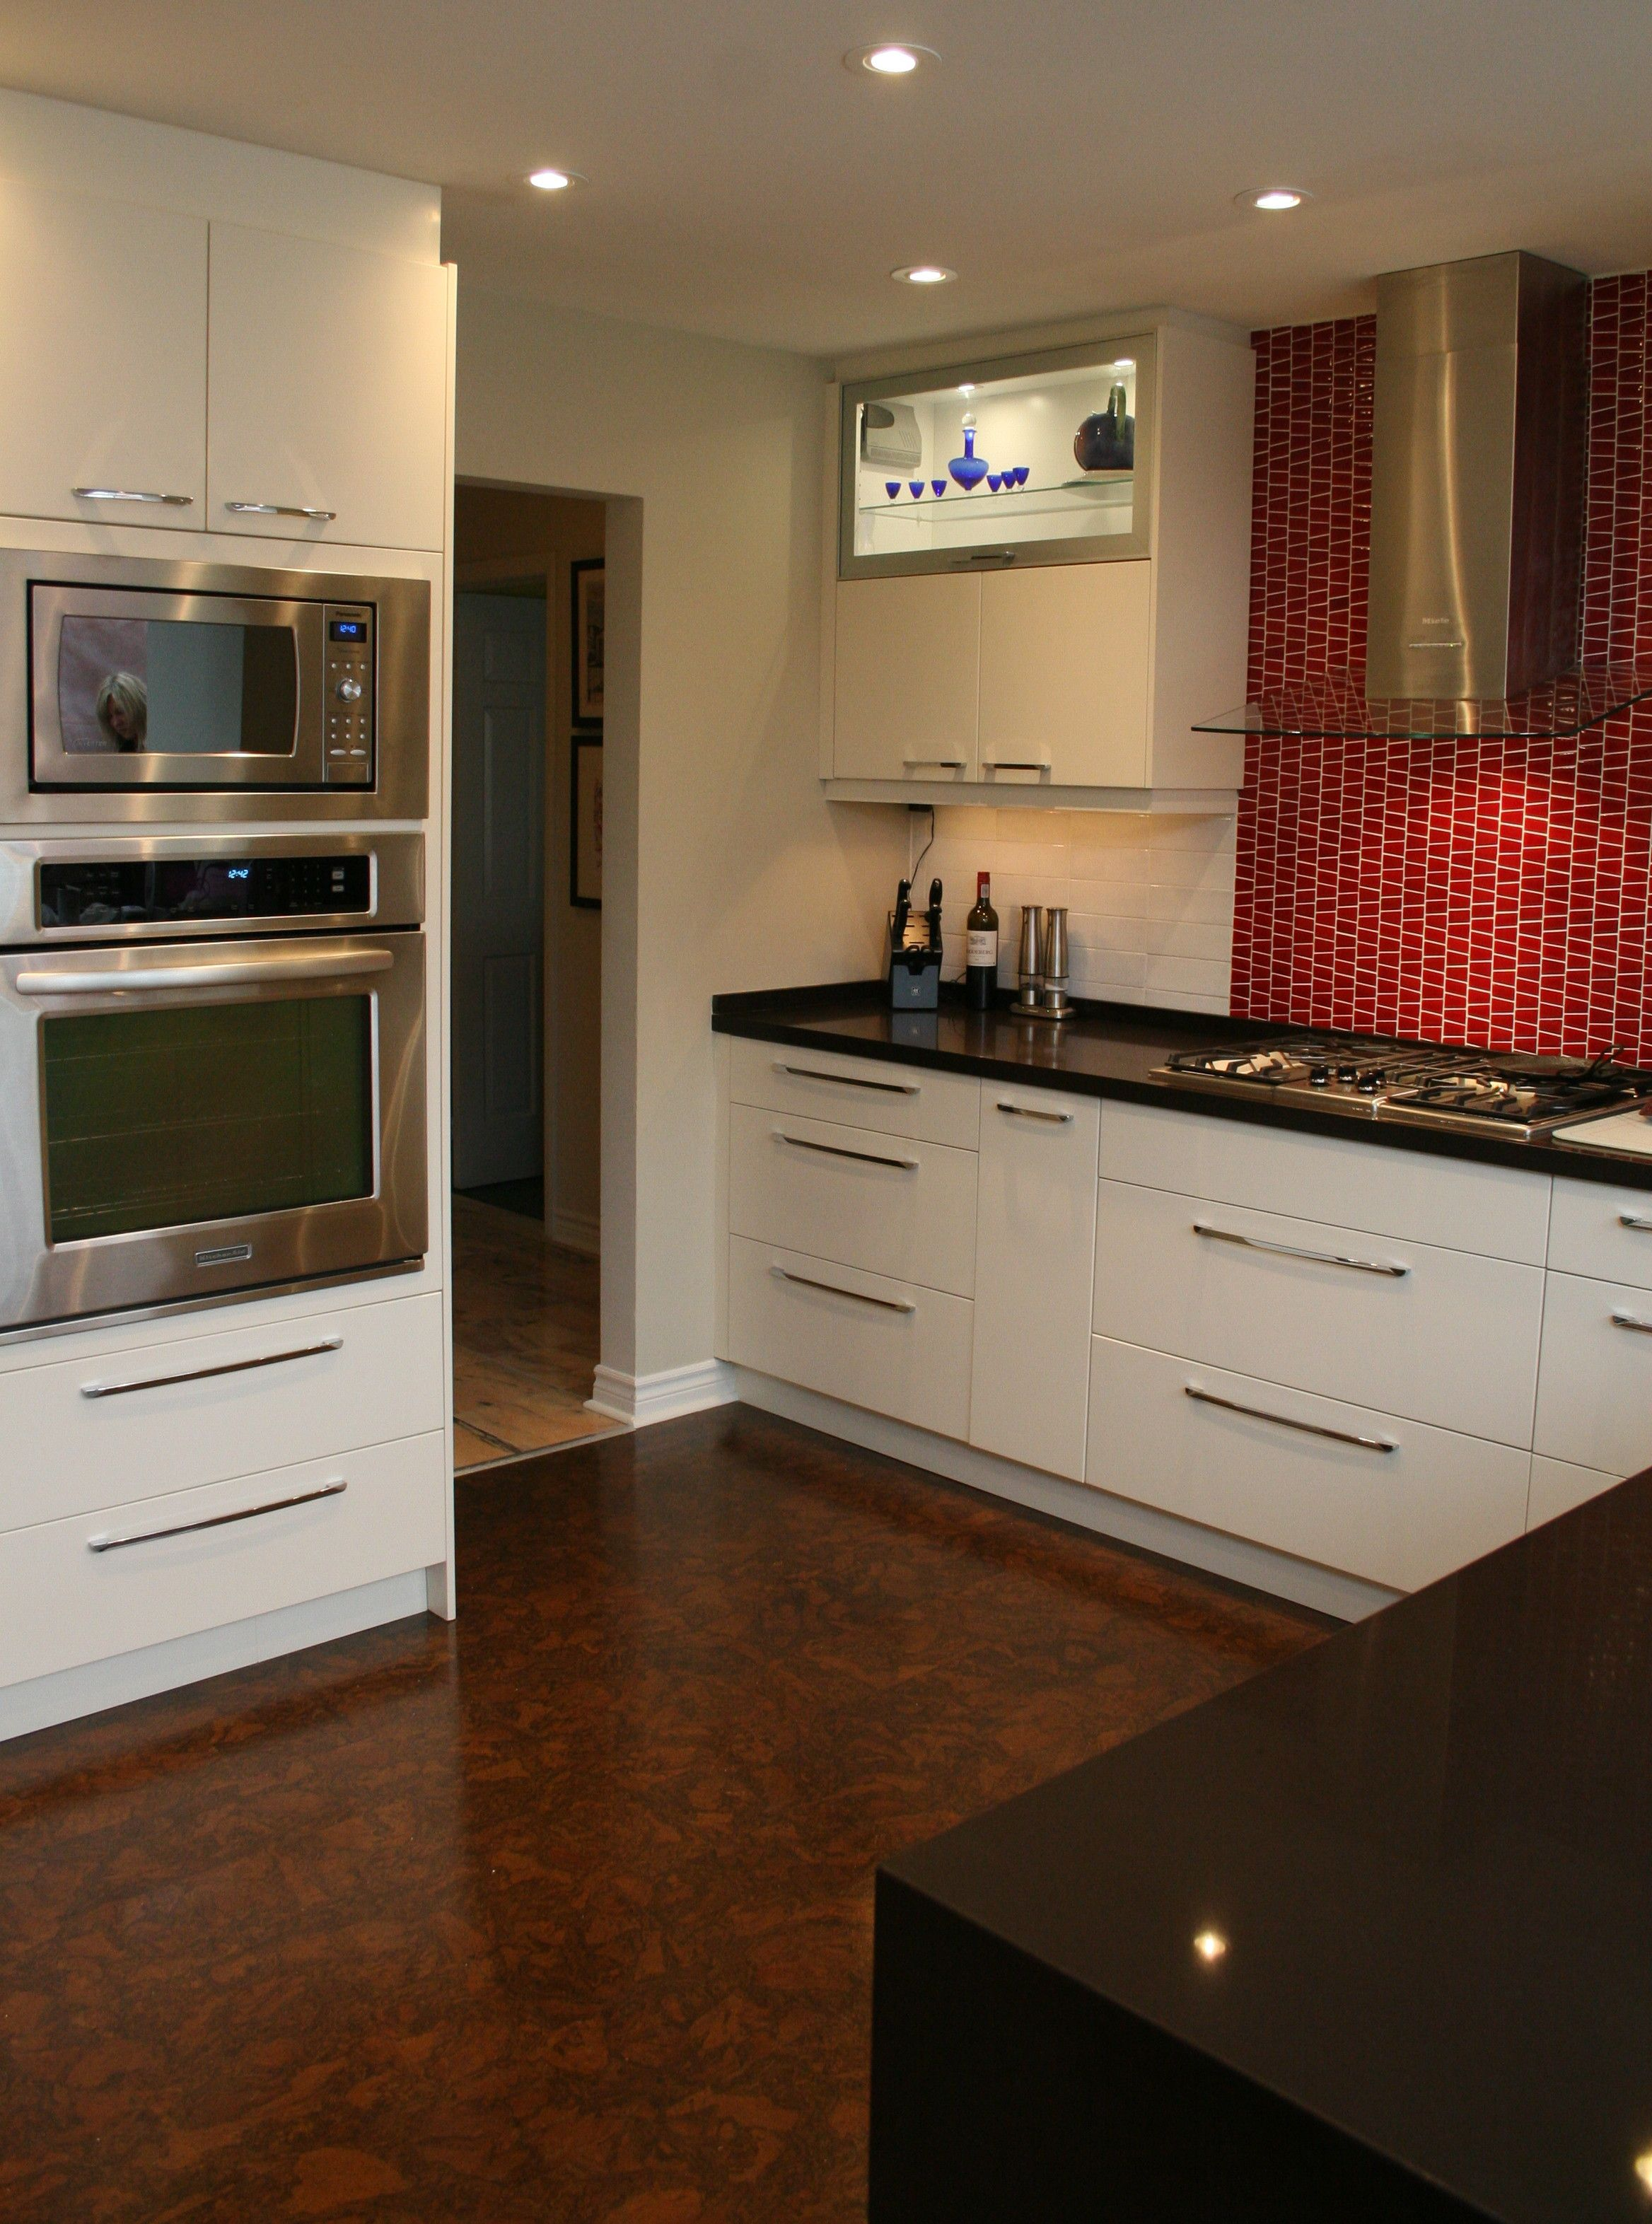 Kitchen - Cabinets from floor to ceiling in a light cream ...